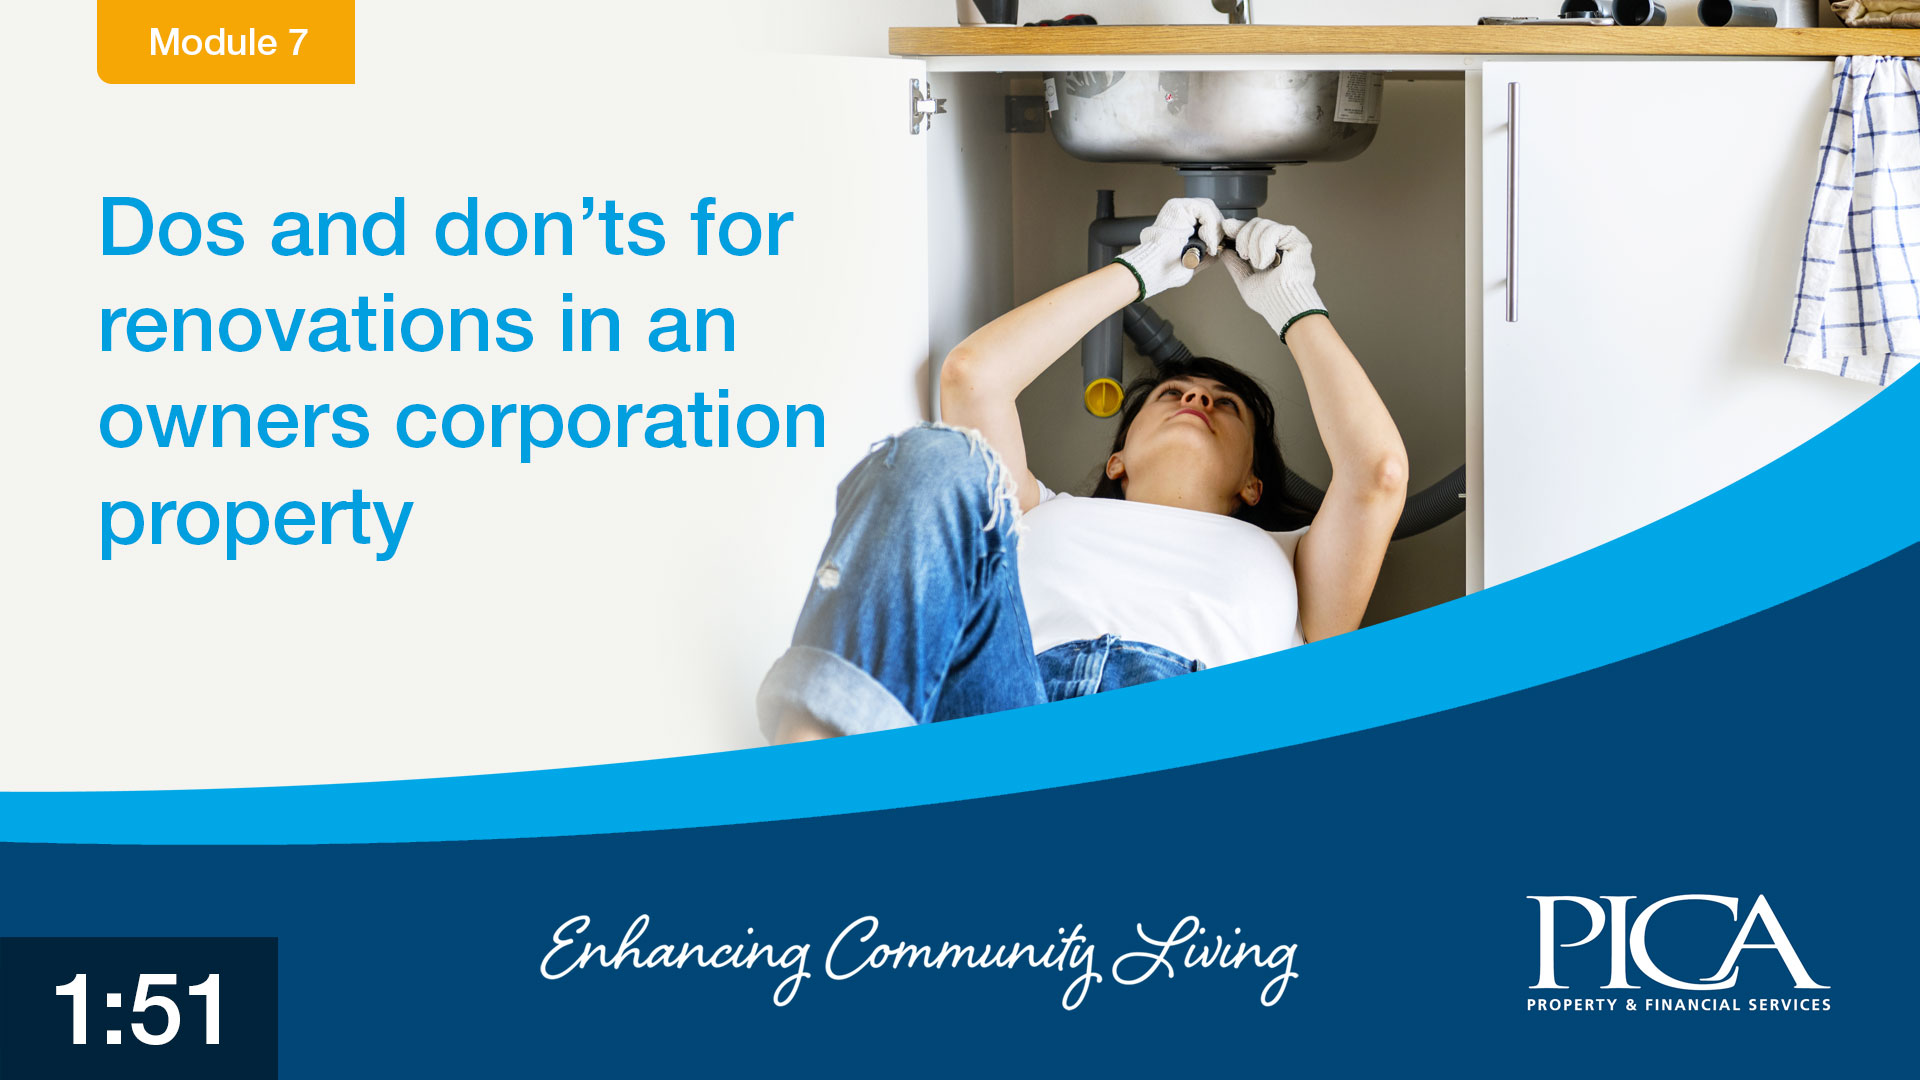 Dos and don'ts for renovations in a owners corporation property